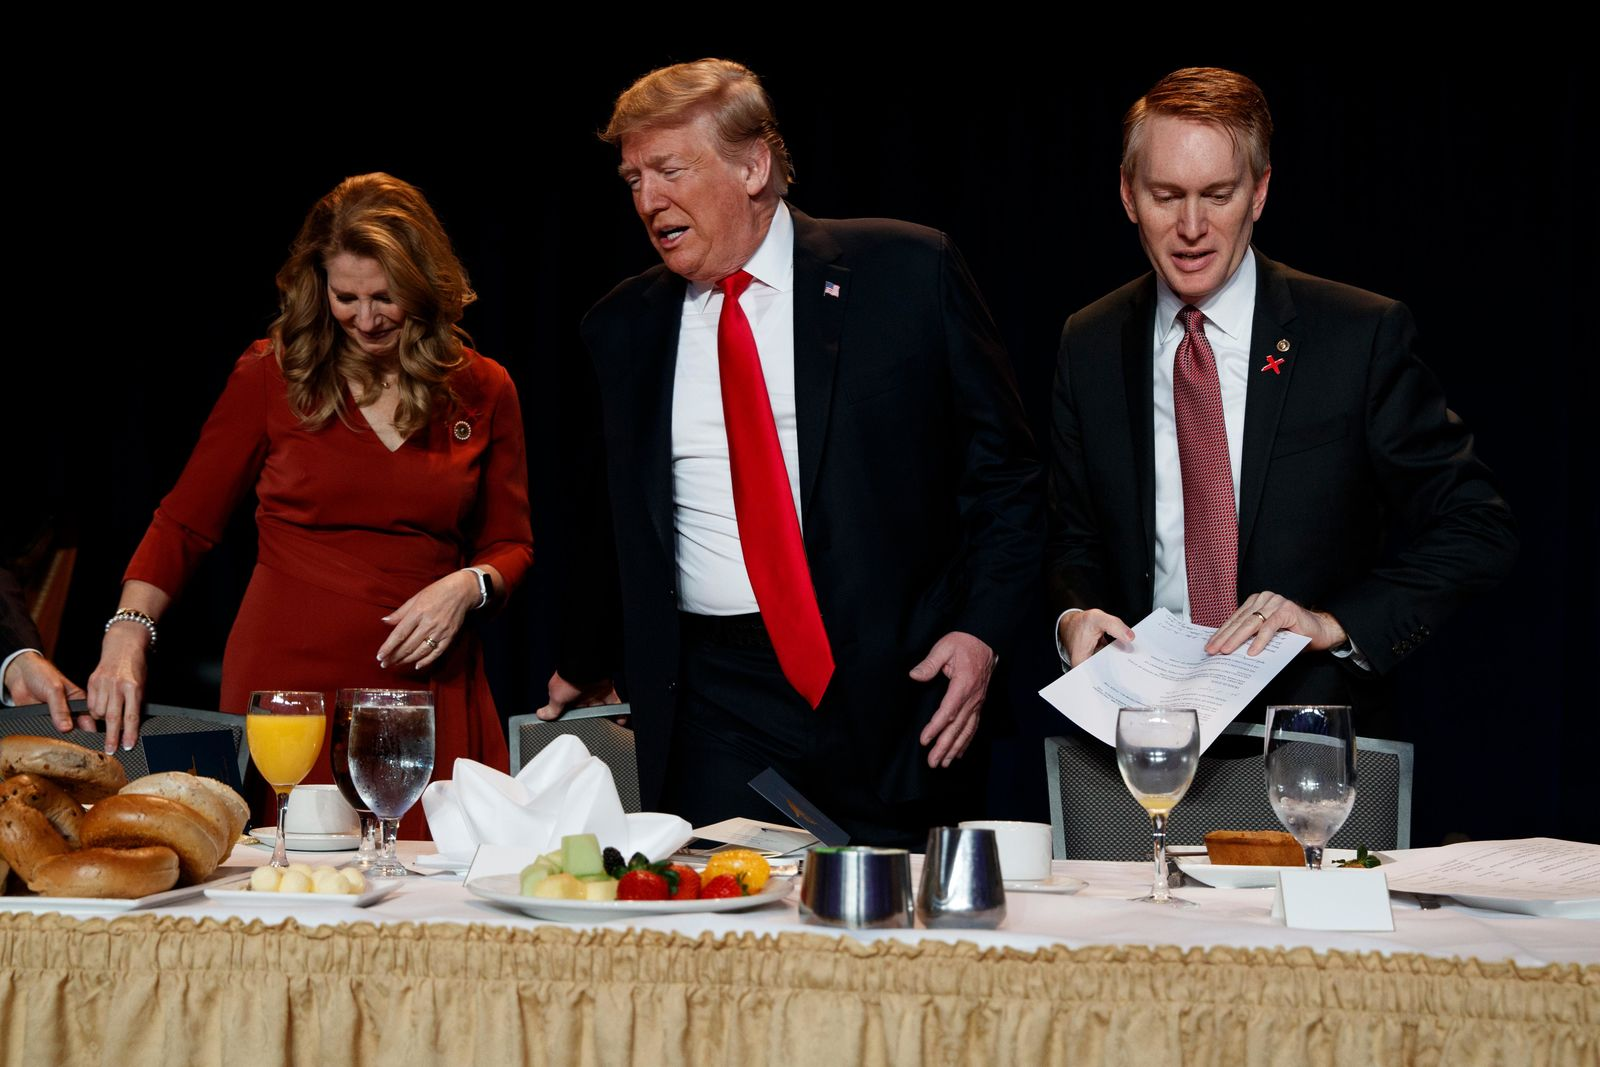 President Donald Trump, center, Rep. James Lankford, R-Okla., right, and Cindy Lankford take their seats during the National Prayer Breakfast, Thursday, Feb. 7, 2019, in Washington. (AP Photo/ Evan Vucci)